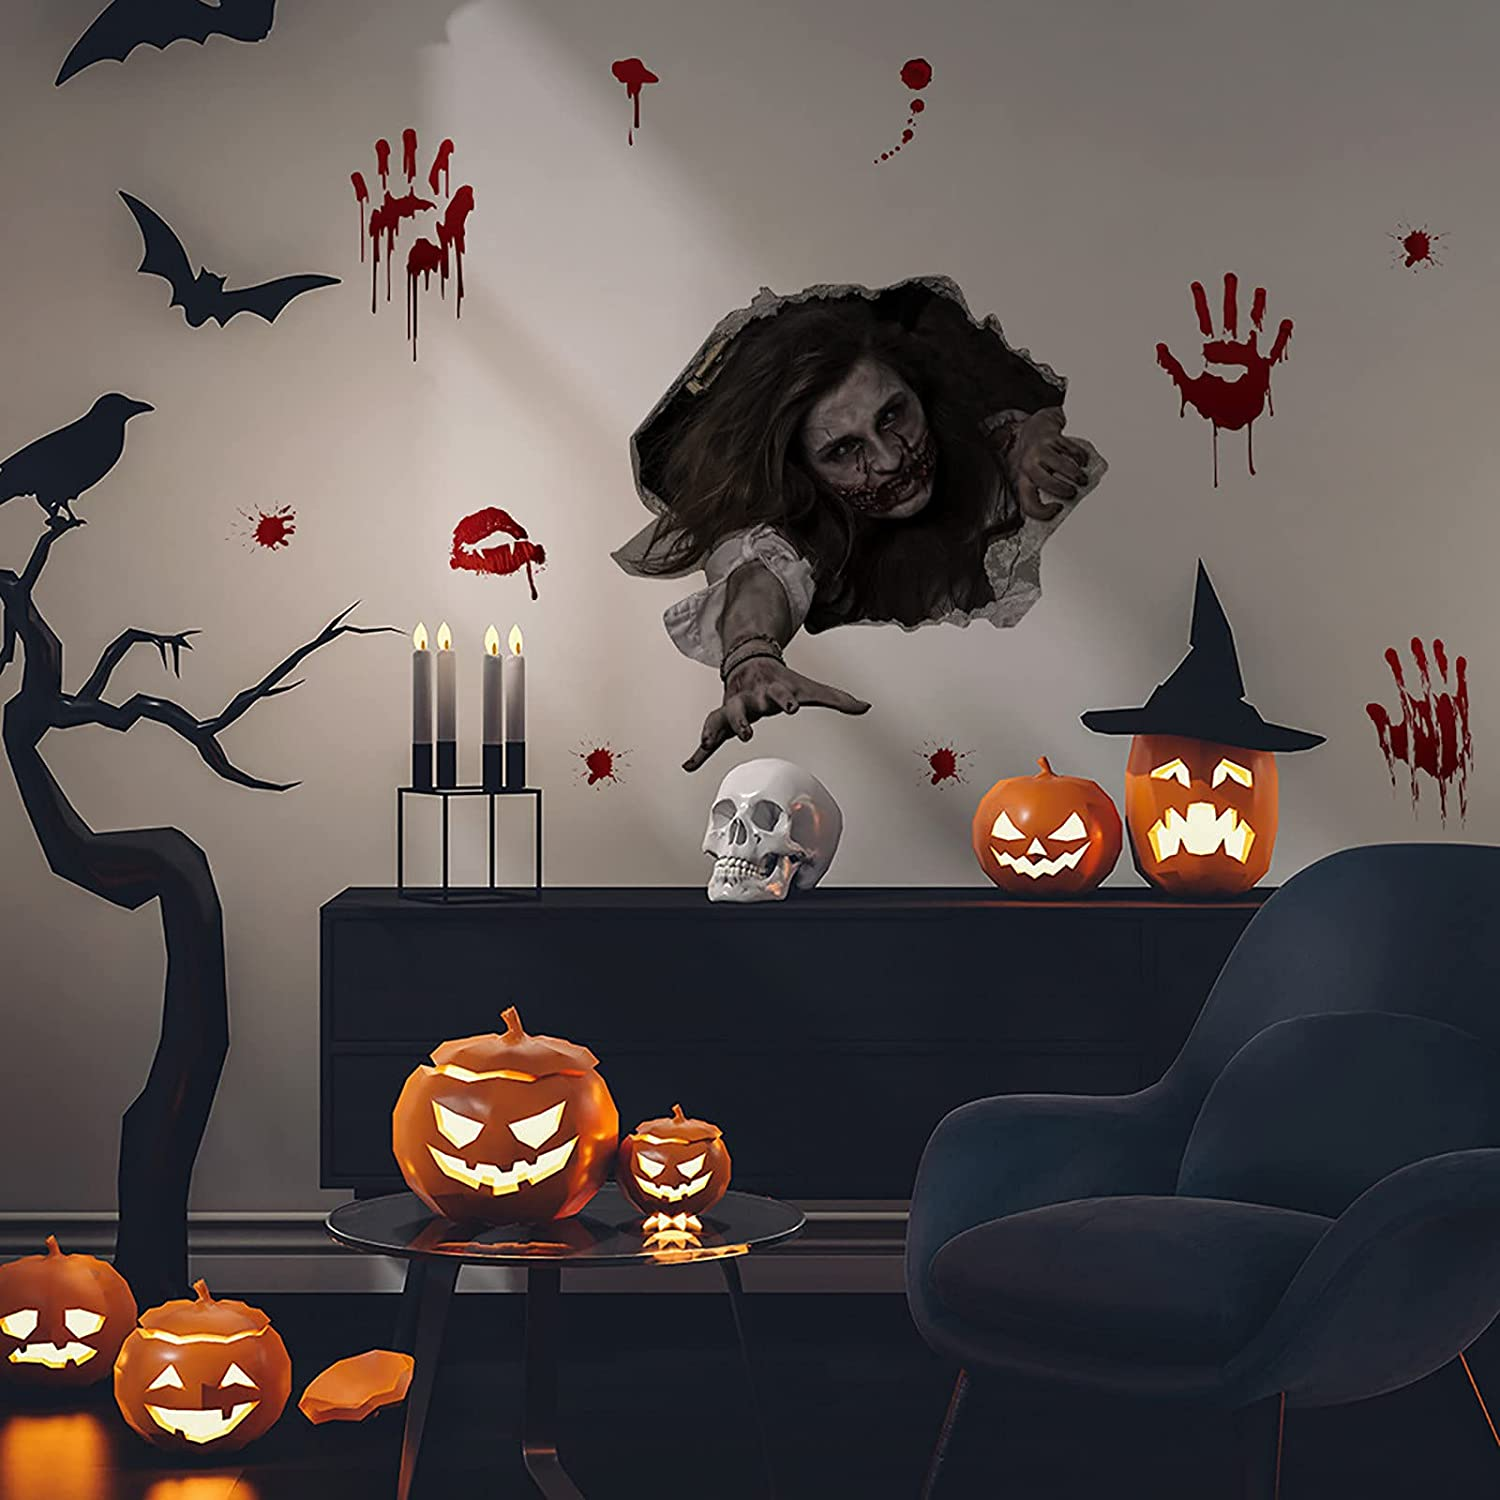 ZSWWang Halloween Decorations Max 40% OFF 3D Wall Max 40% OFF Stickers Toilet Lid Sticke